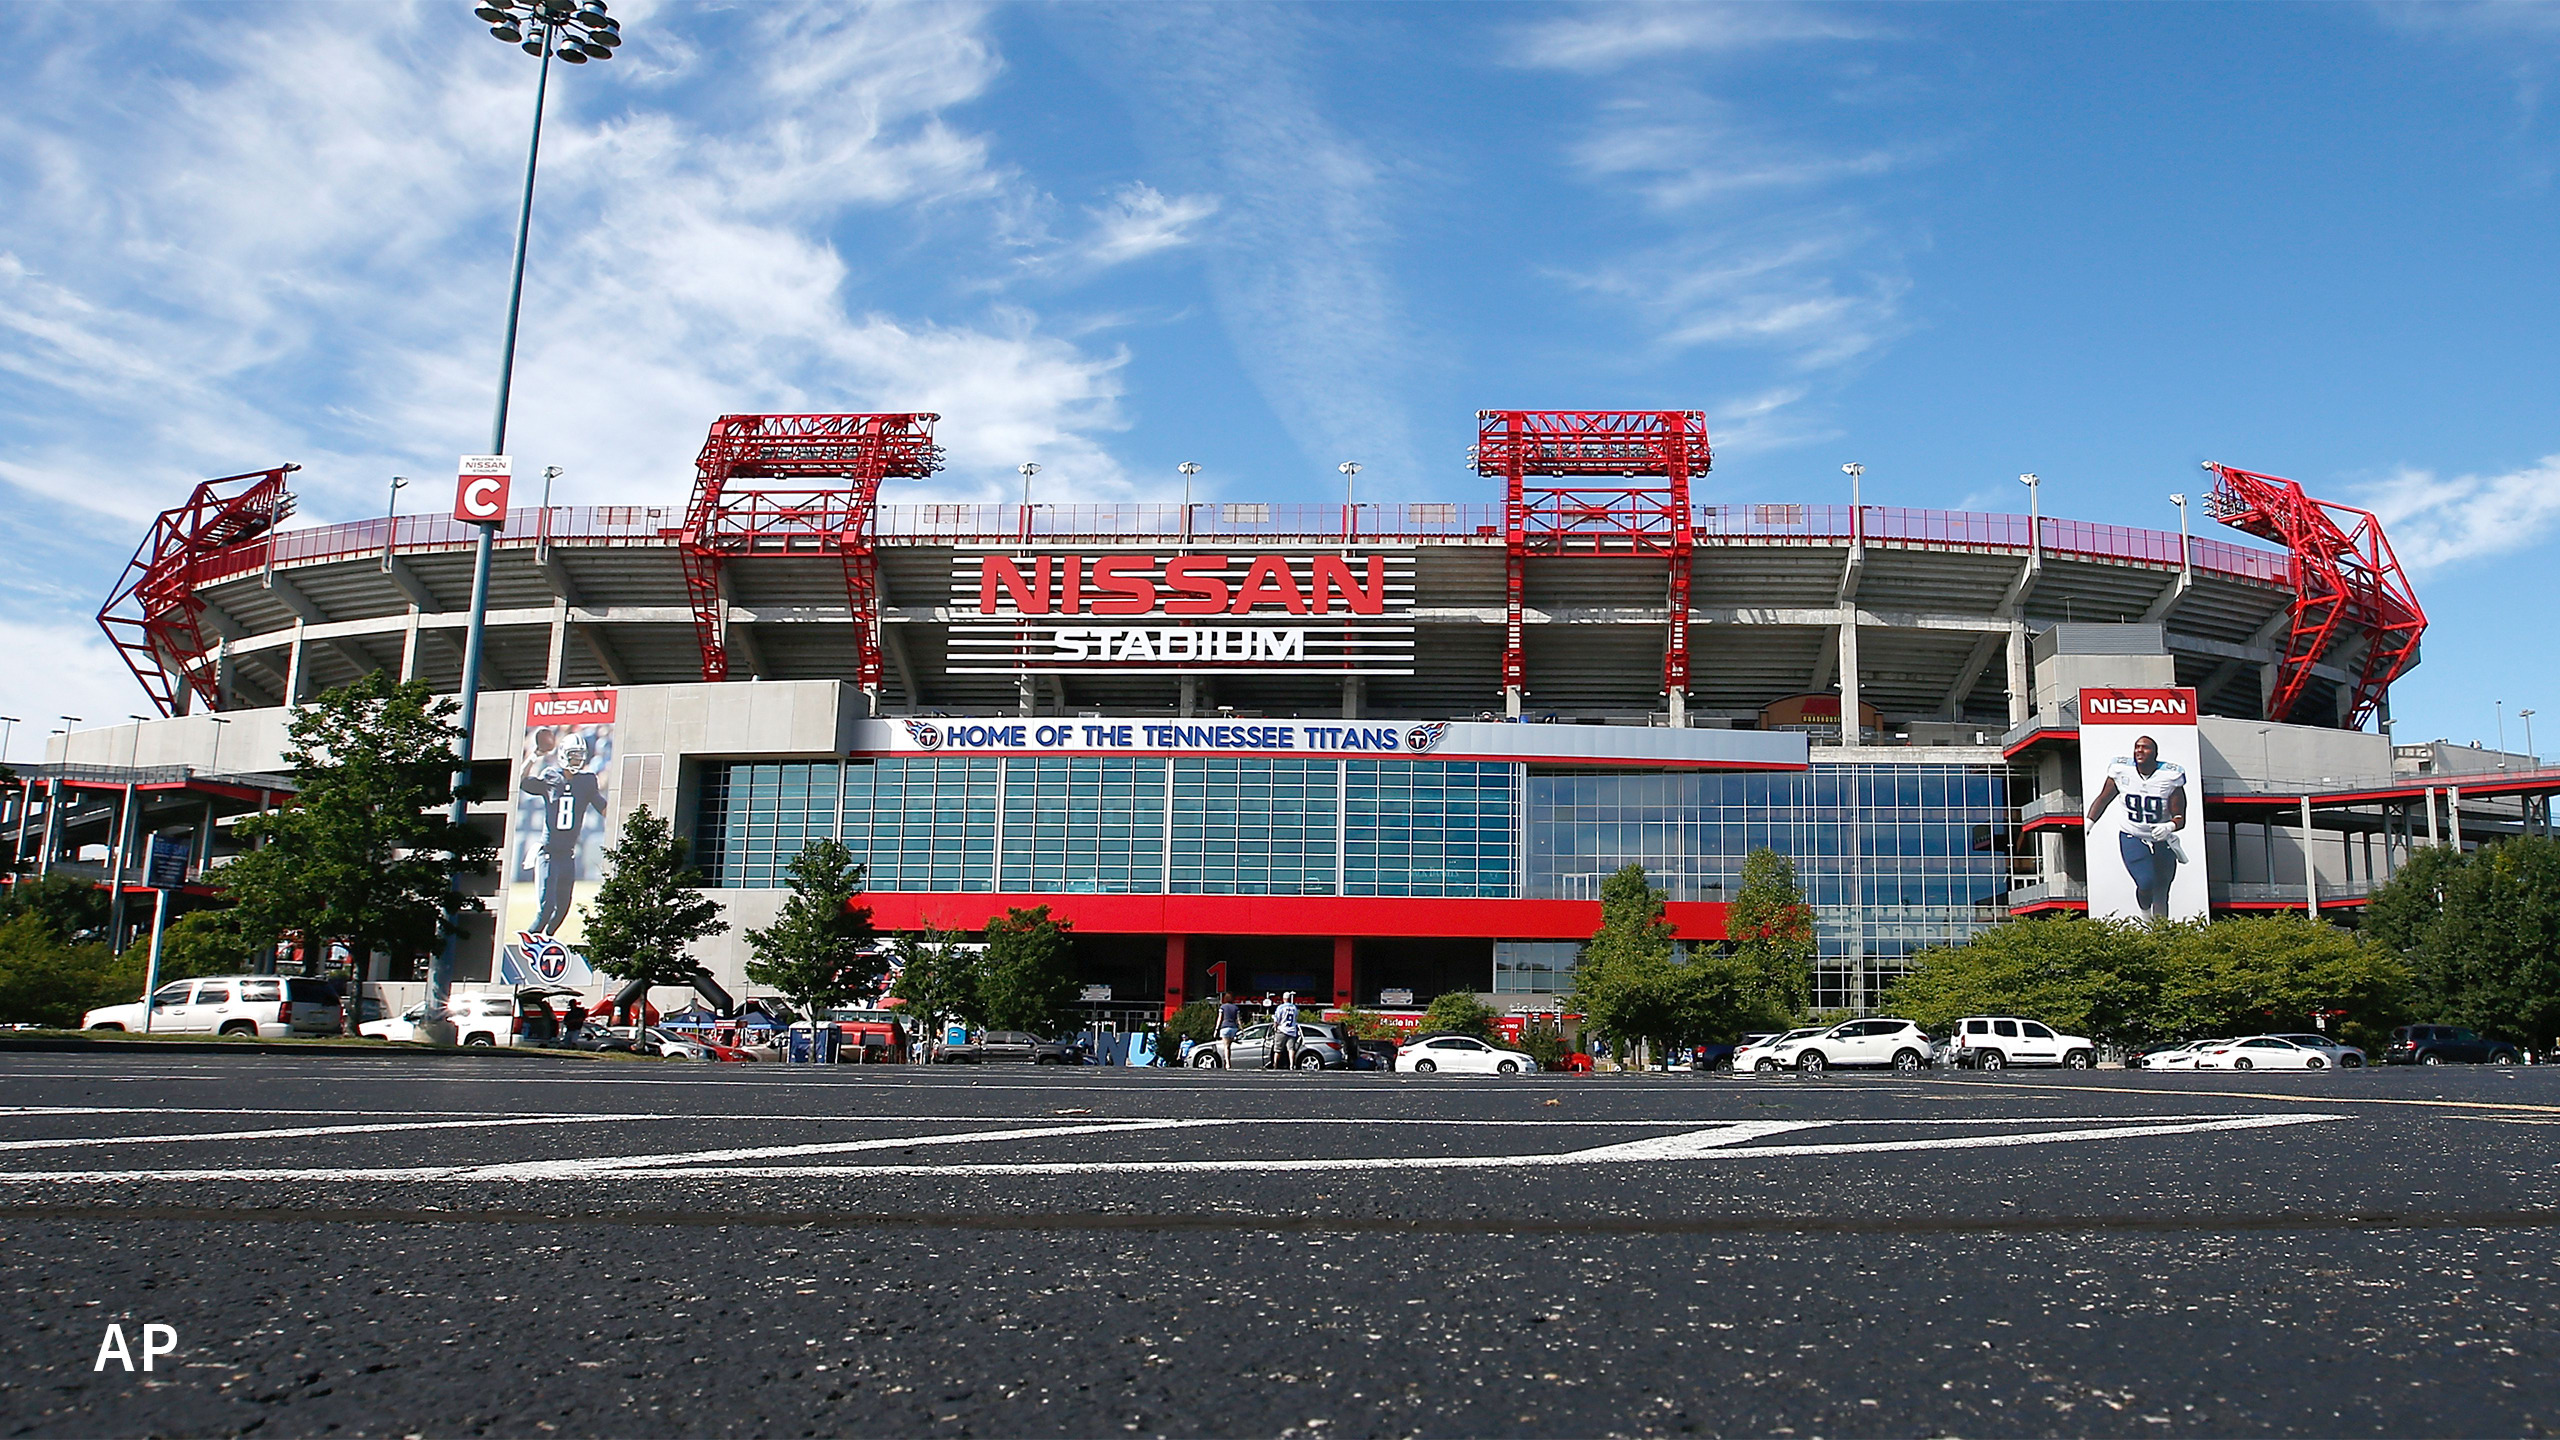 Fan Entry / Clear Bag Policy at Nissan Stadium